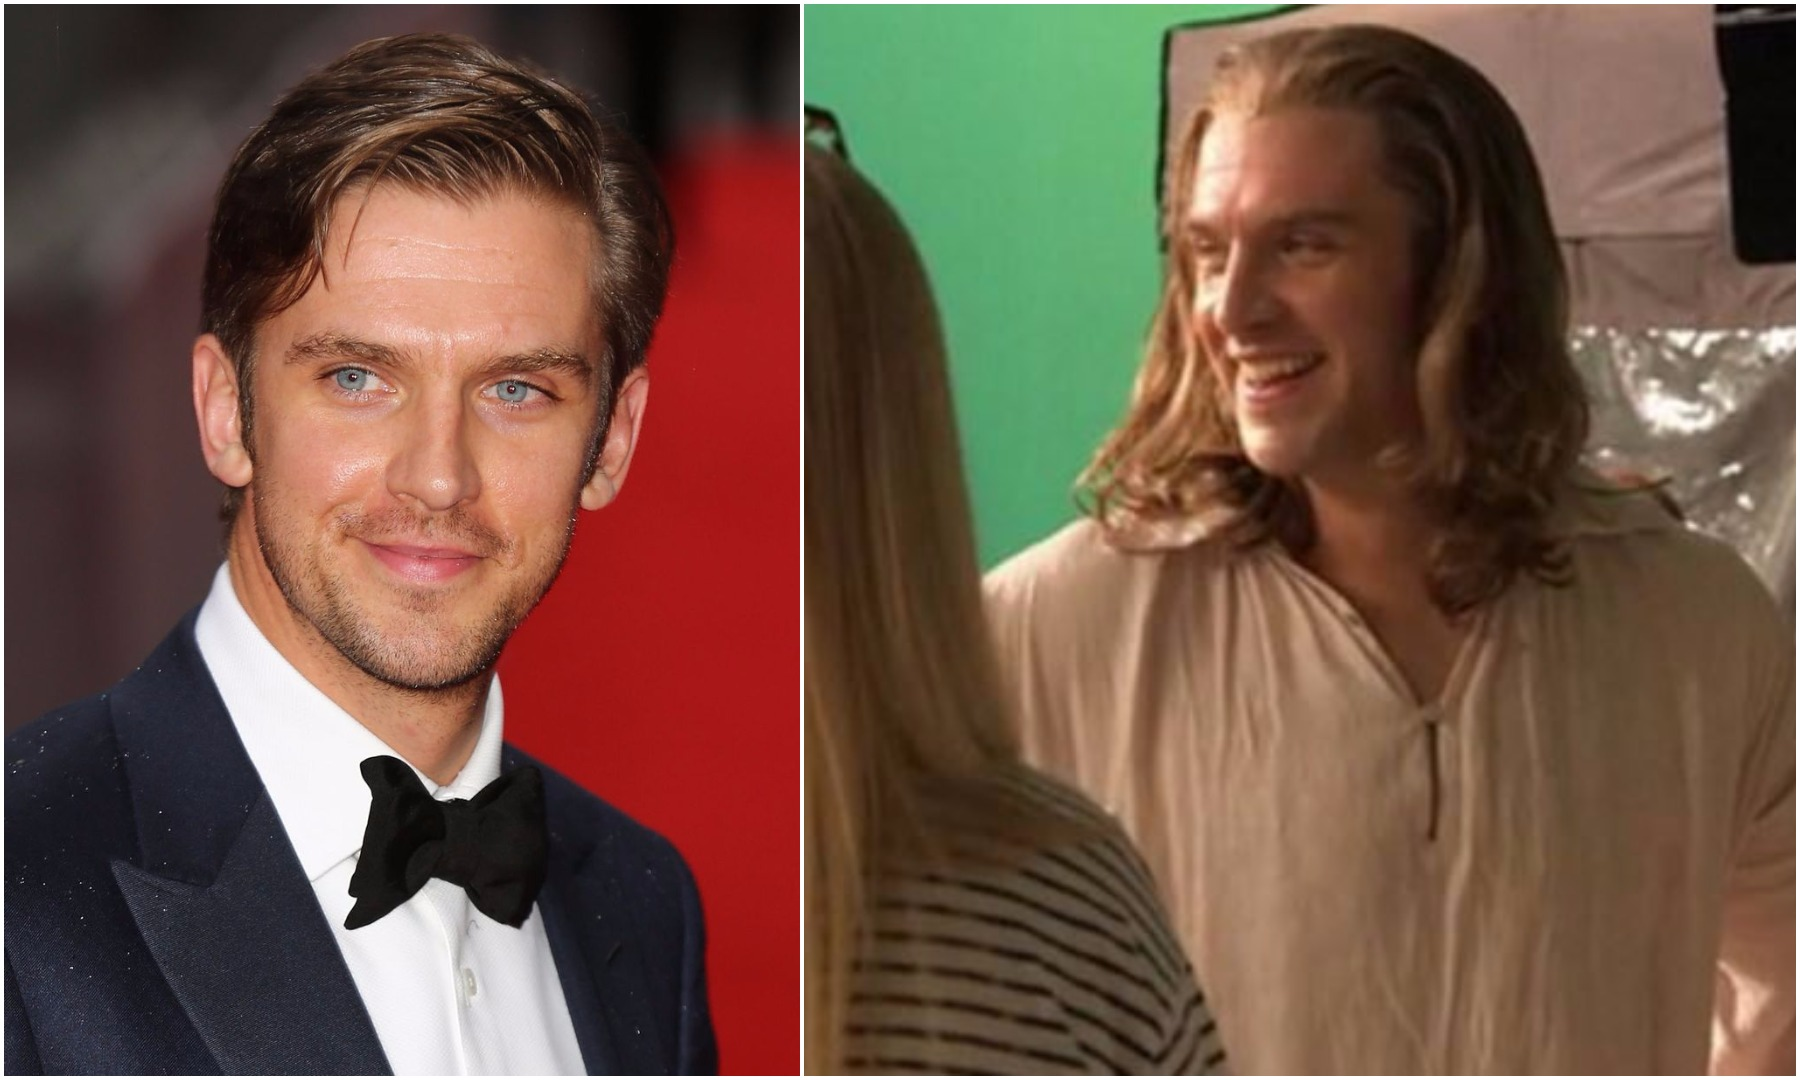 Beauty And The Beast on-set pics reveal glimpse of Dan Stevens looking dashing AF in his prince role